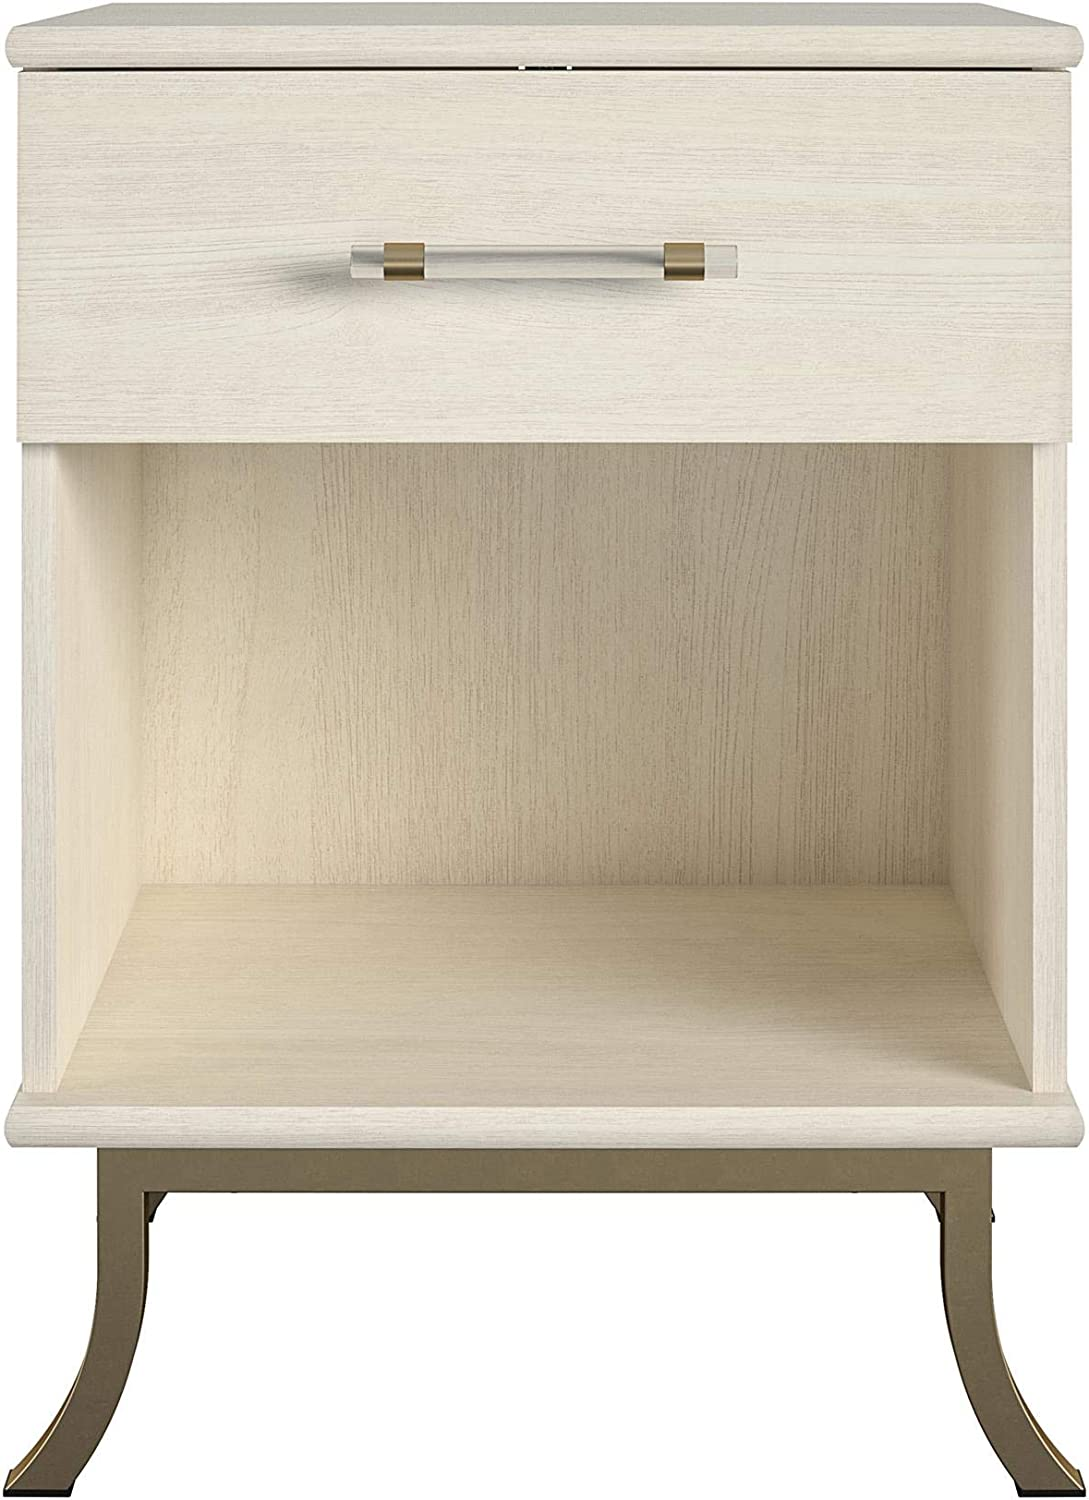 Little Seeds Monarch Hill Clementine Nightstand Oak Ivory Indianapolis Chicago Mall Mall White